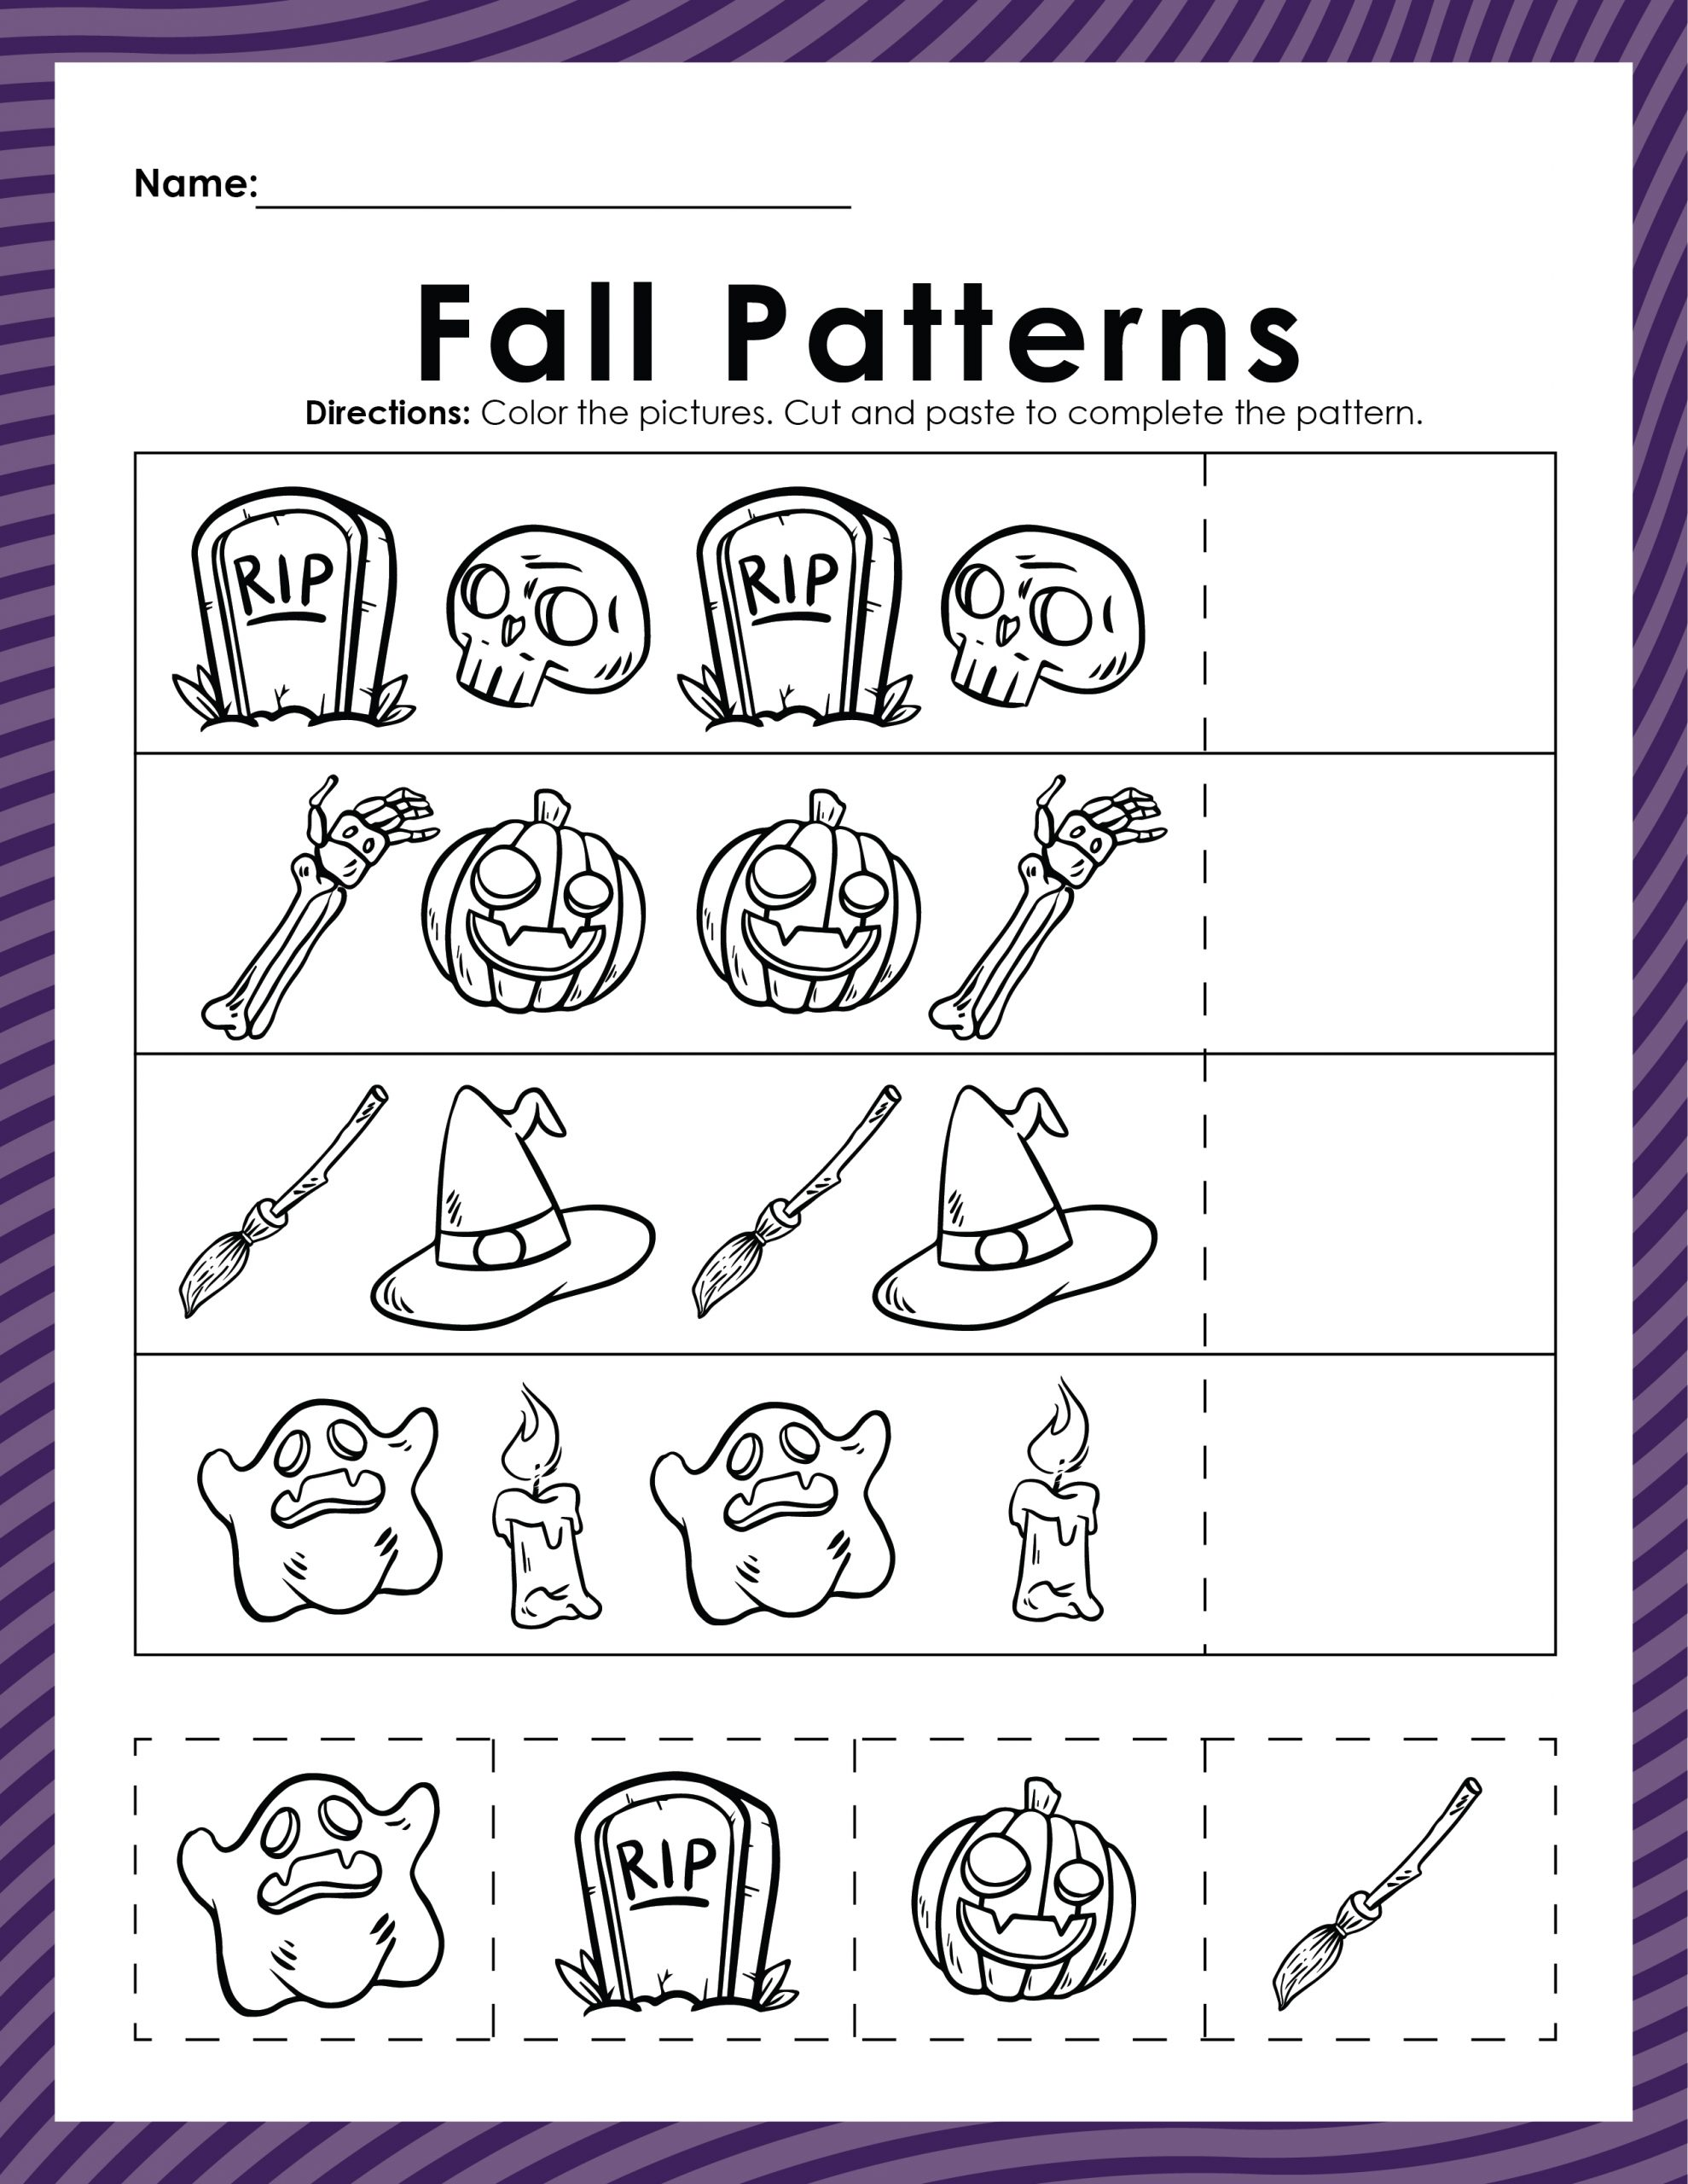 fall patterns coloring sheet, halloween coloring page